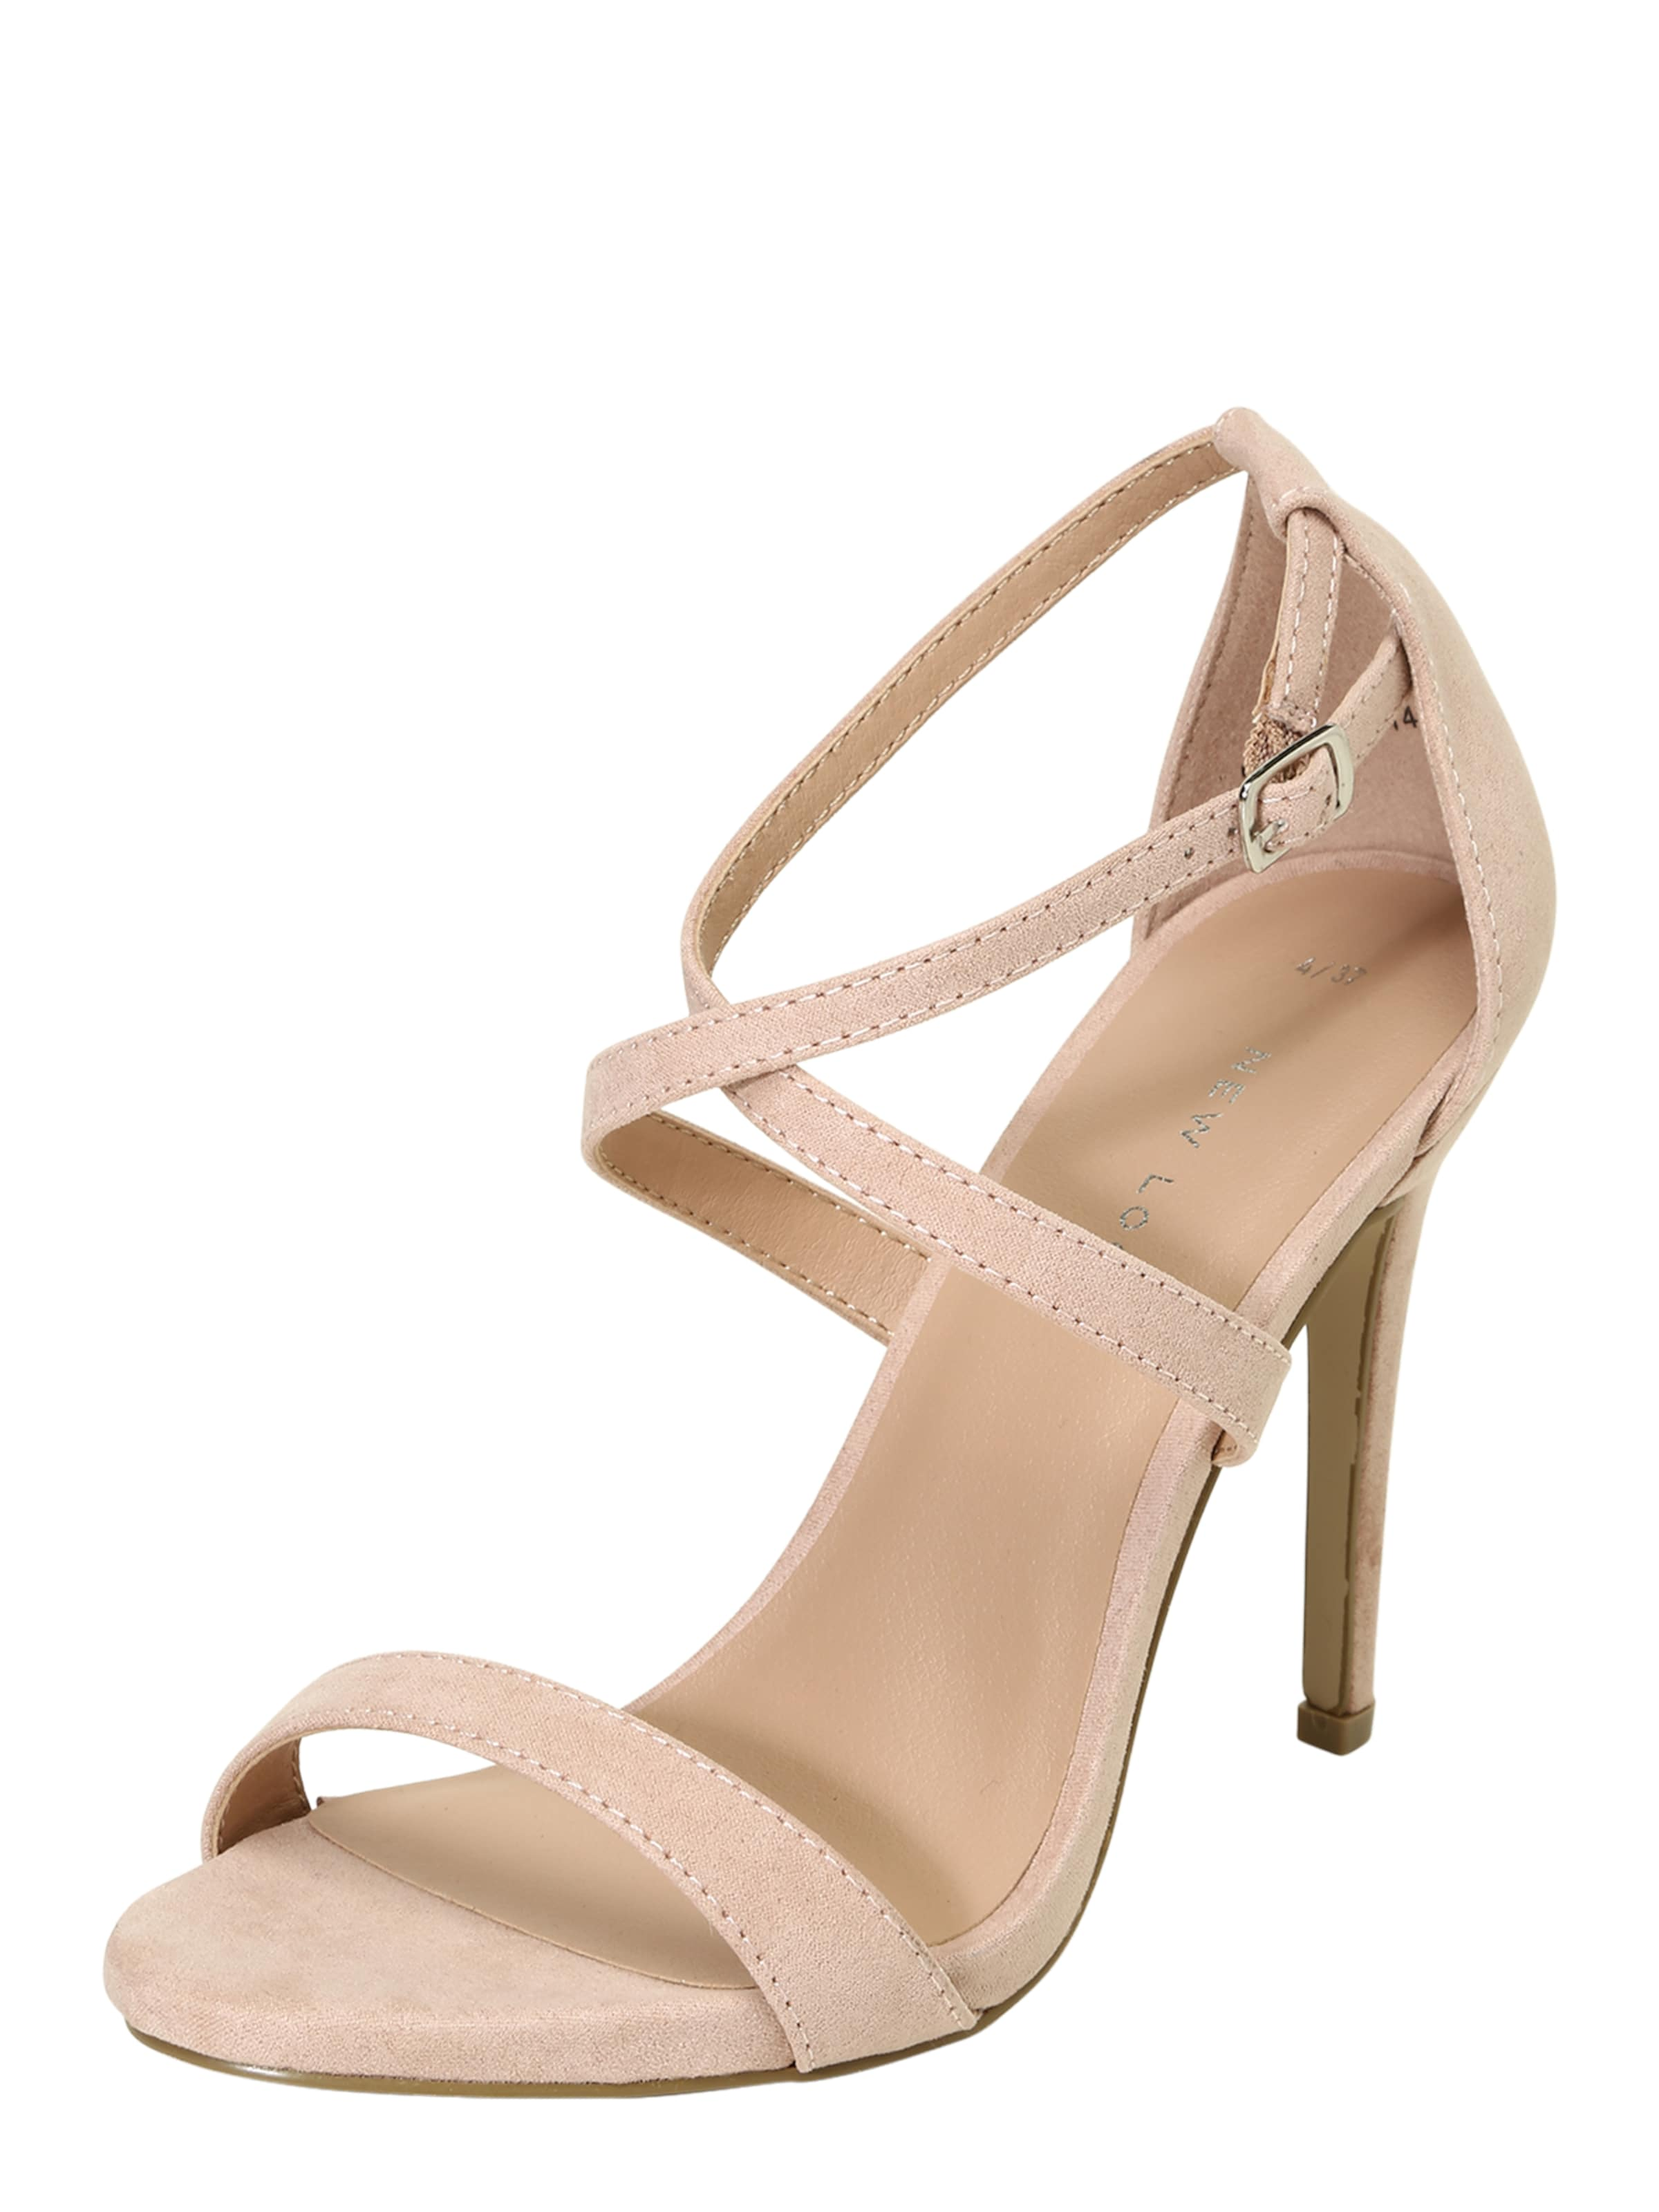 NEW LOOK High | High LOOK Heel-Sandalette  SARINA e8cf27